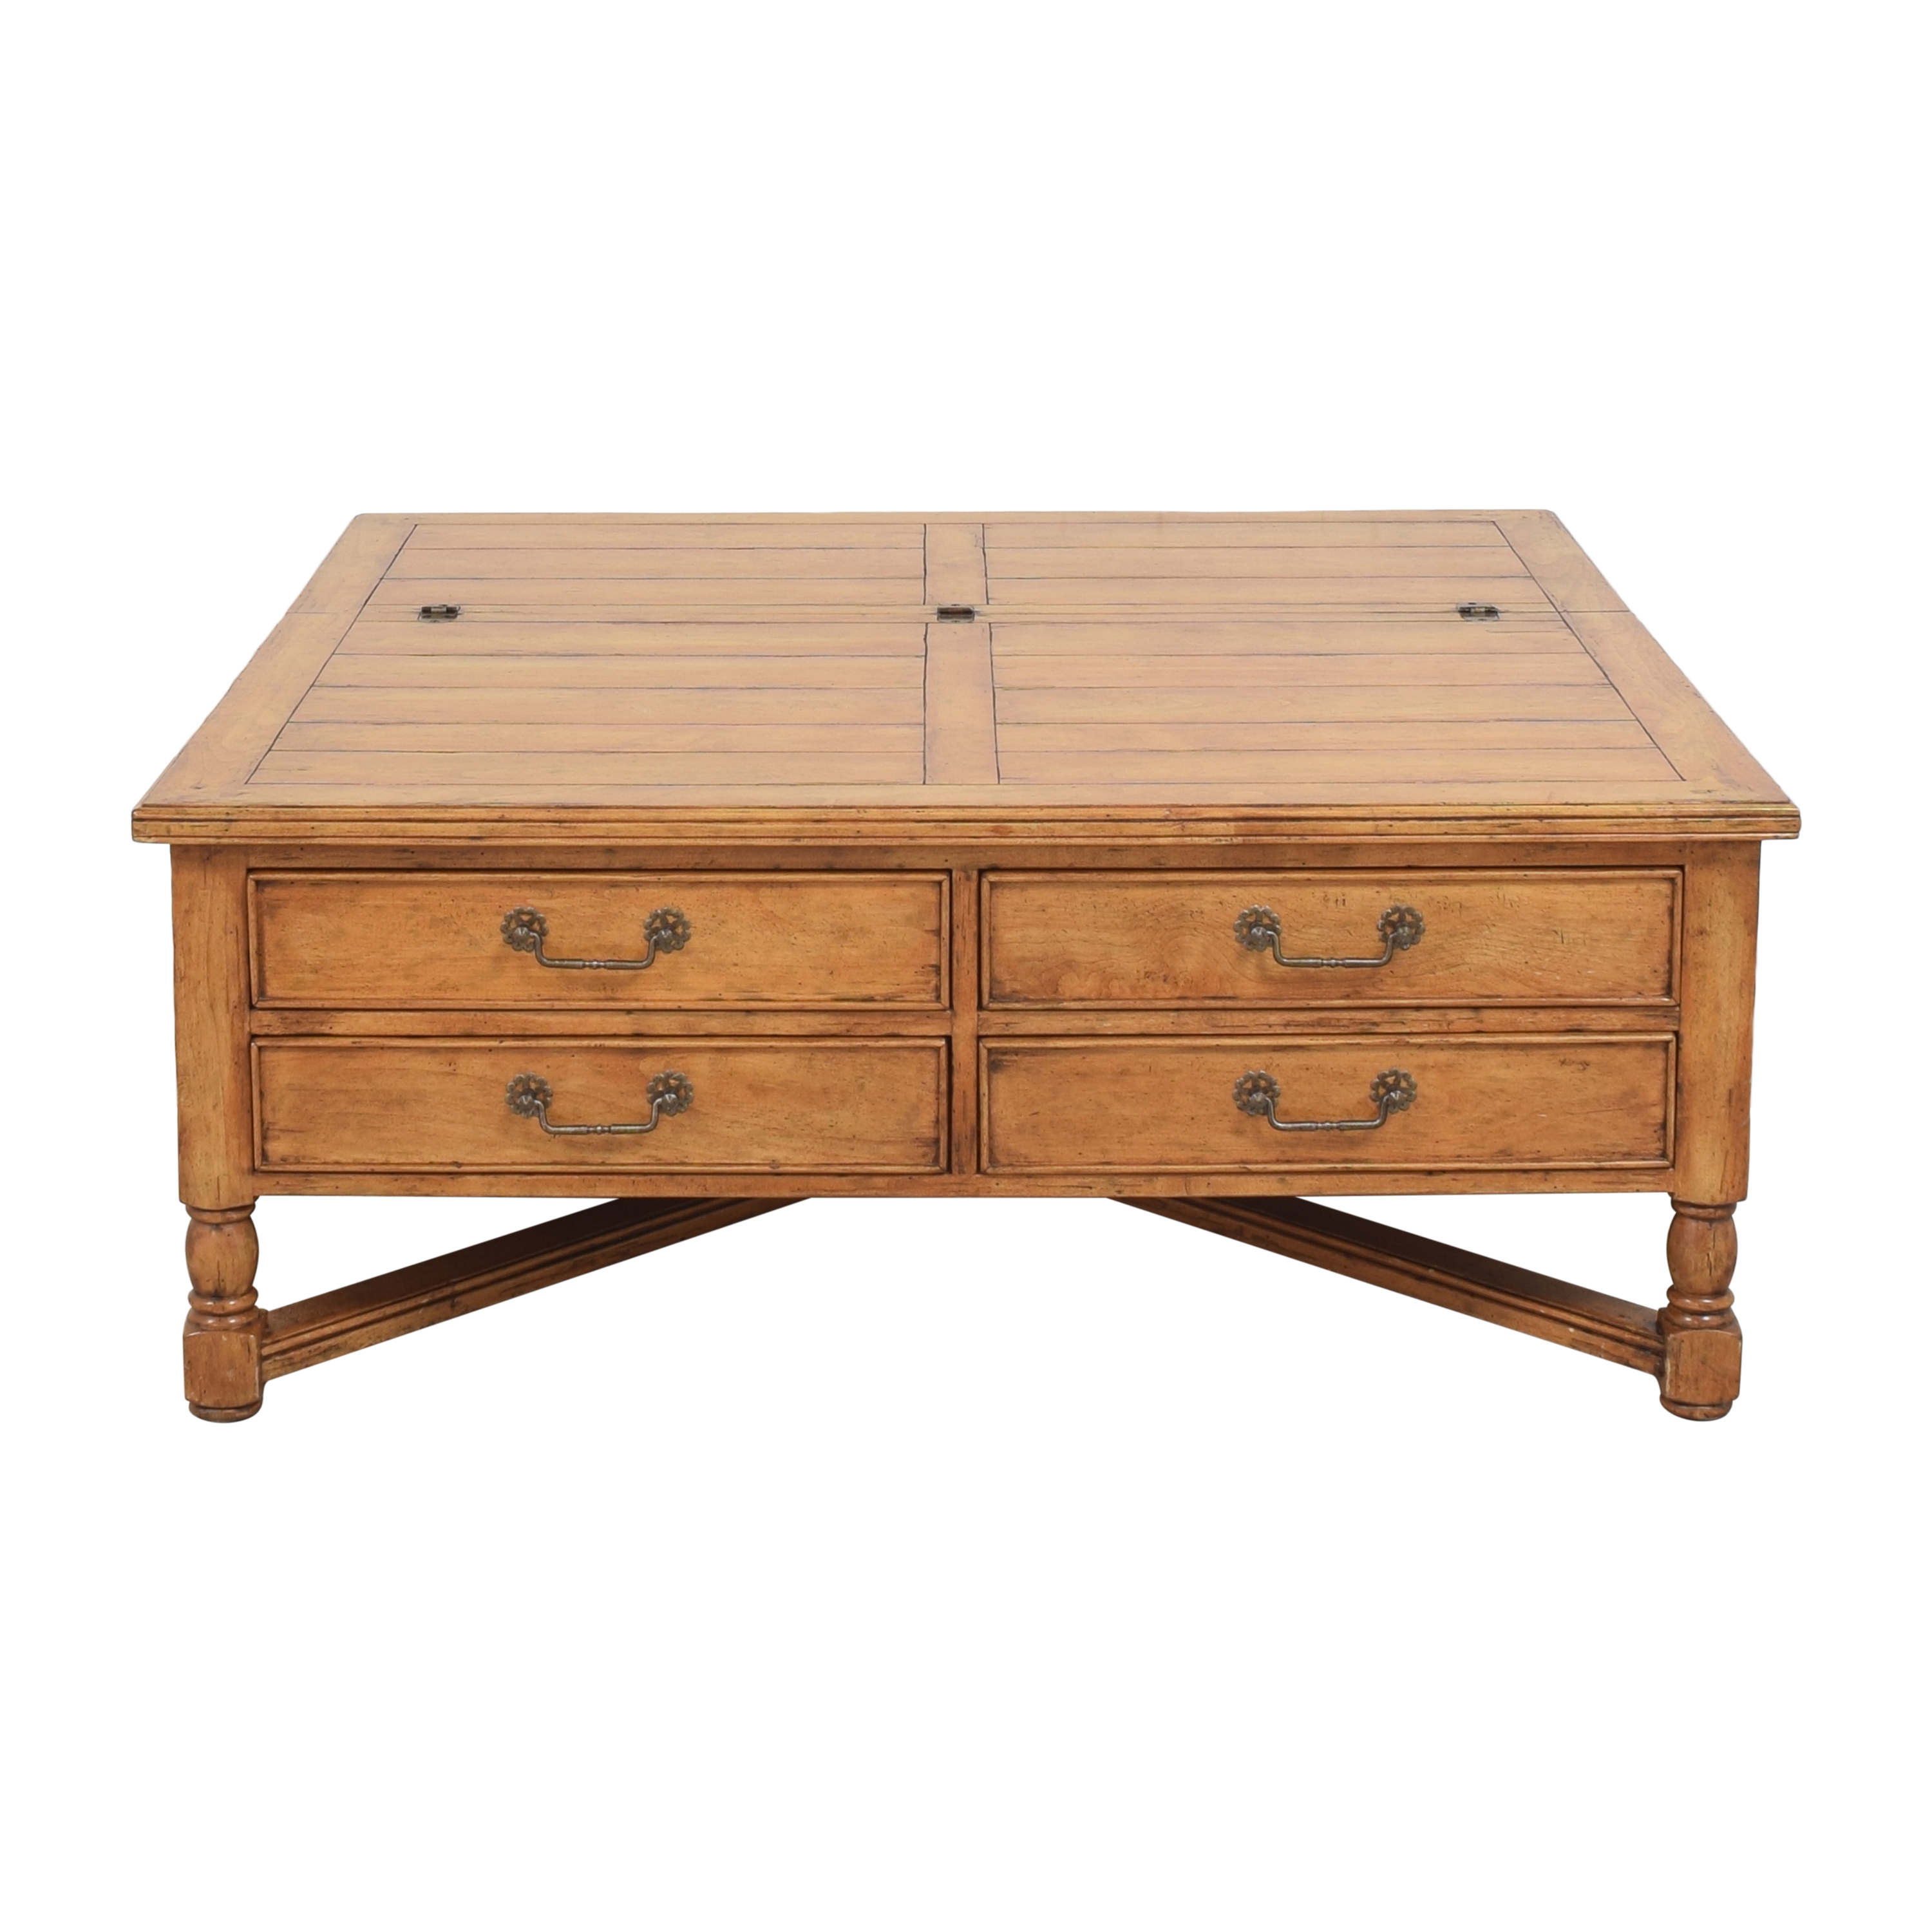 Bausman Square Storage Coffee Table / Tables